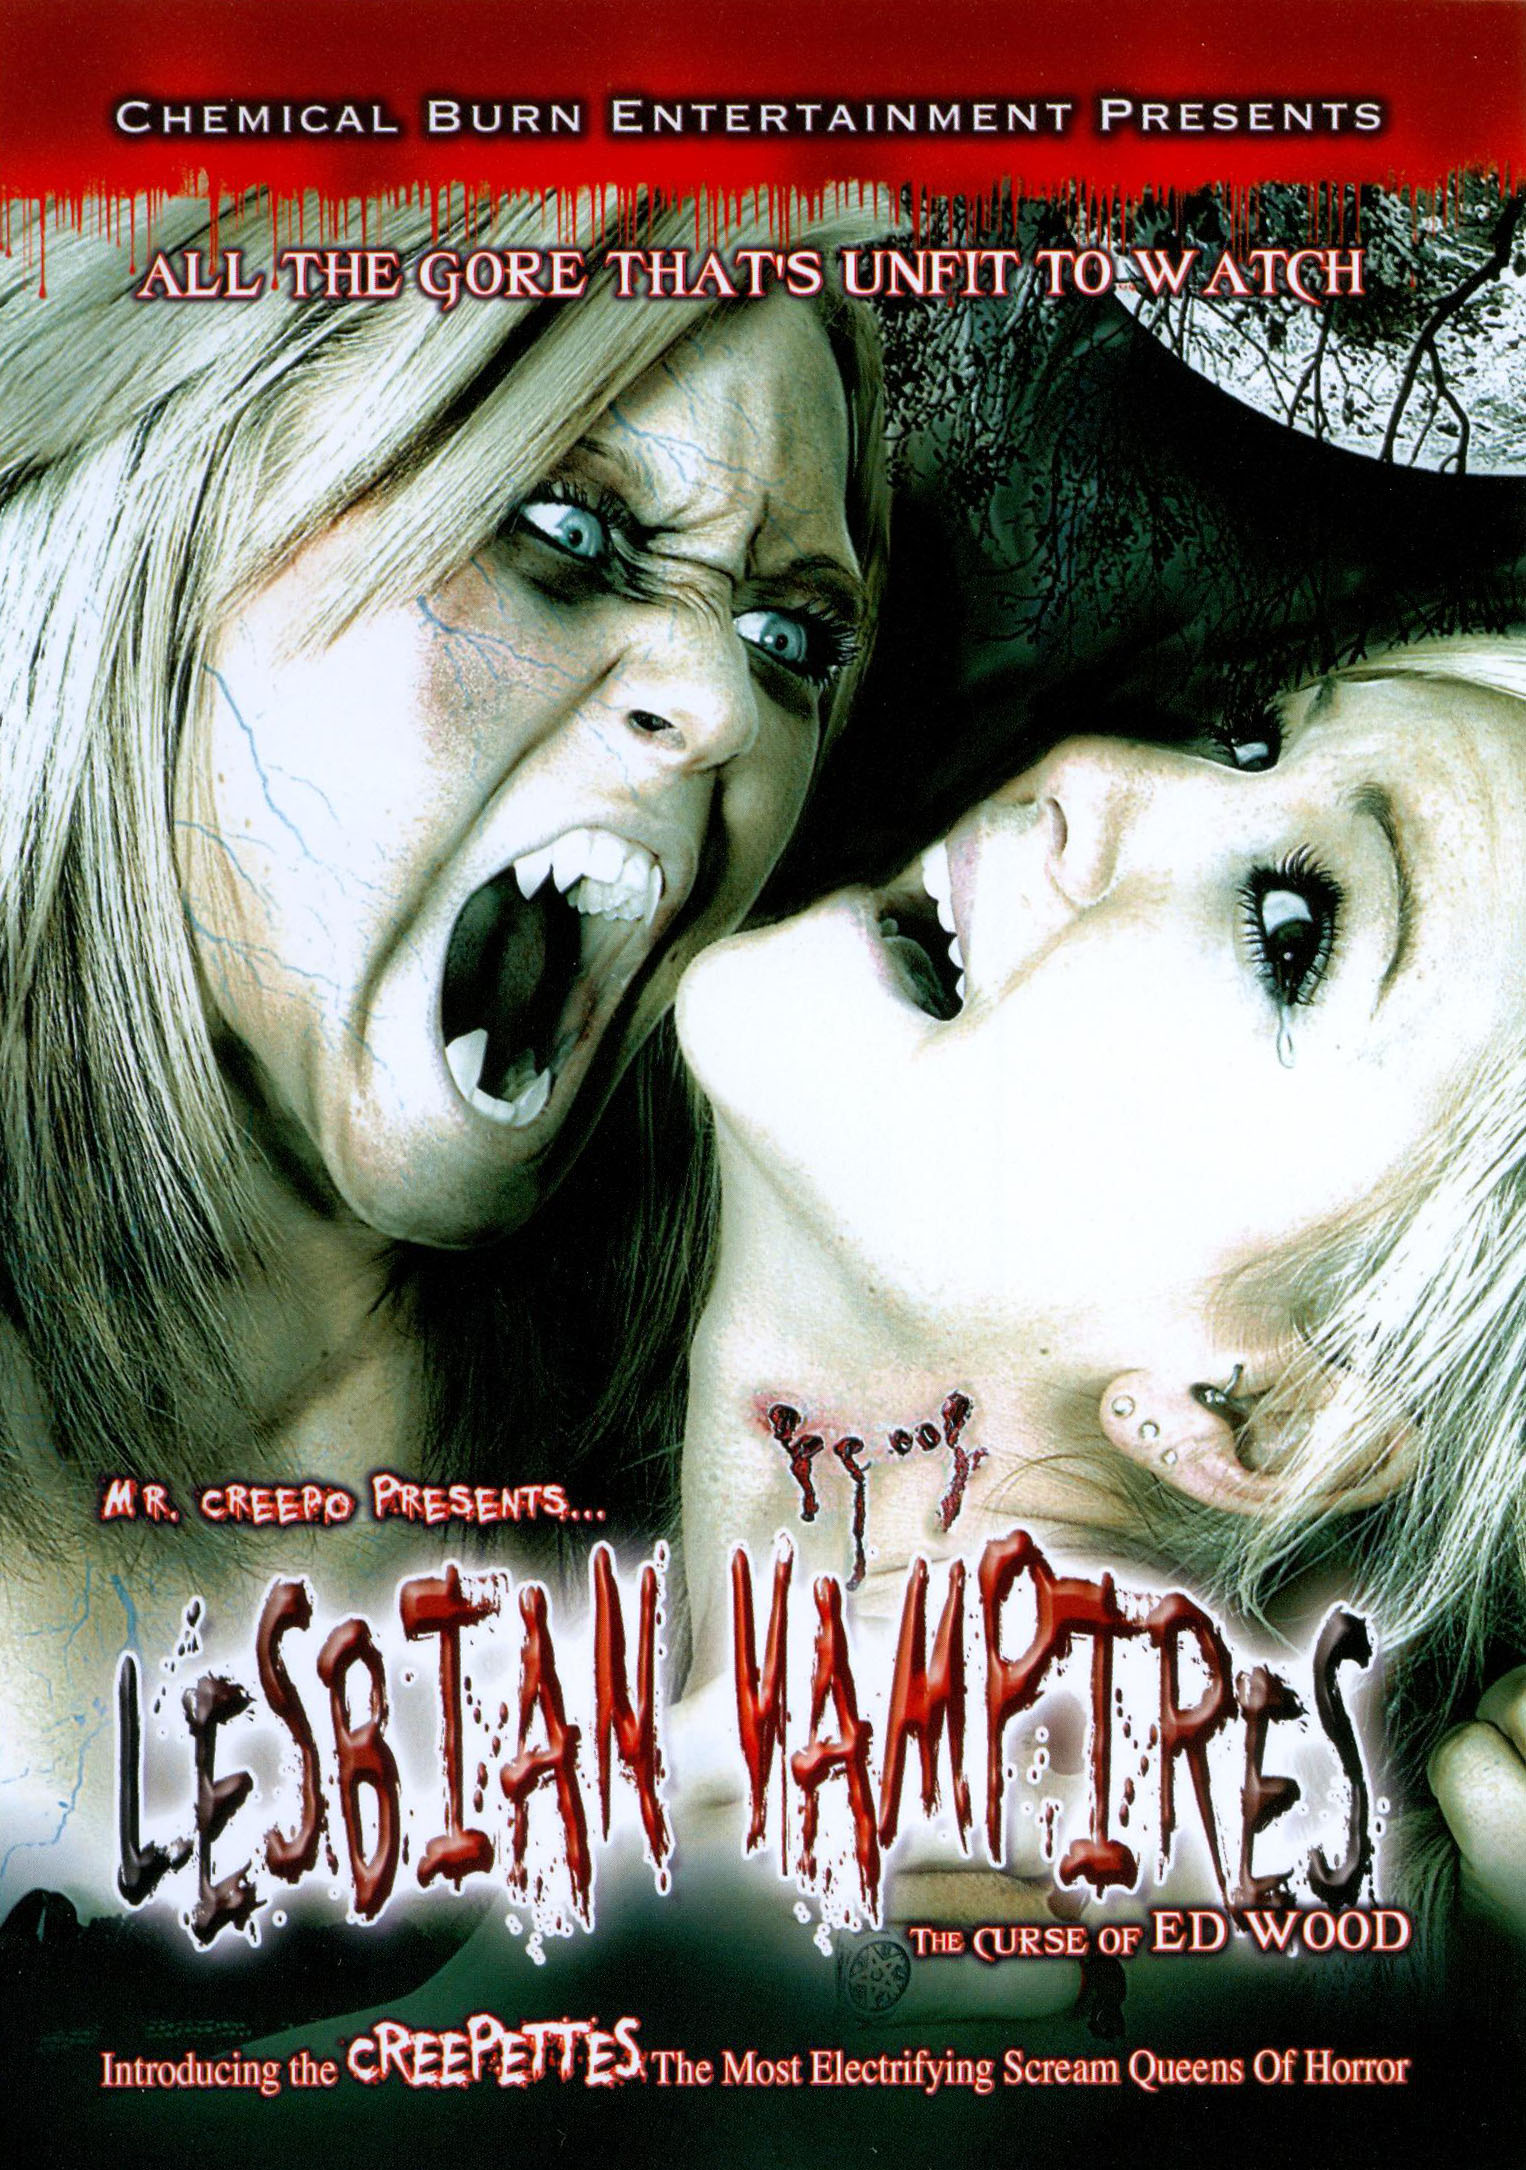 Download legal barley lesbian vampire movies free xxx picture